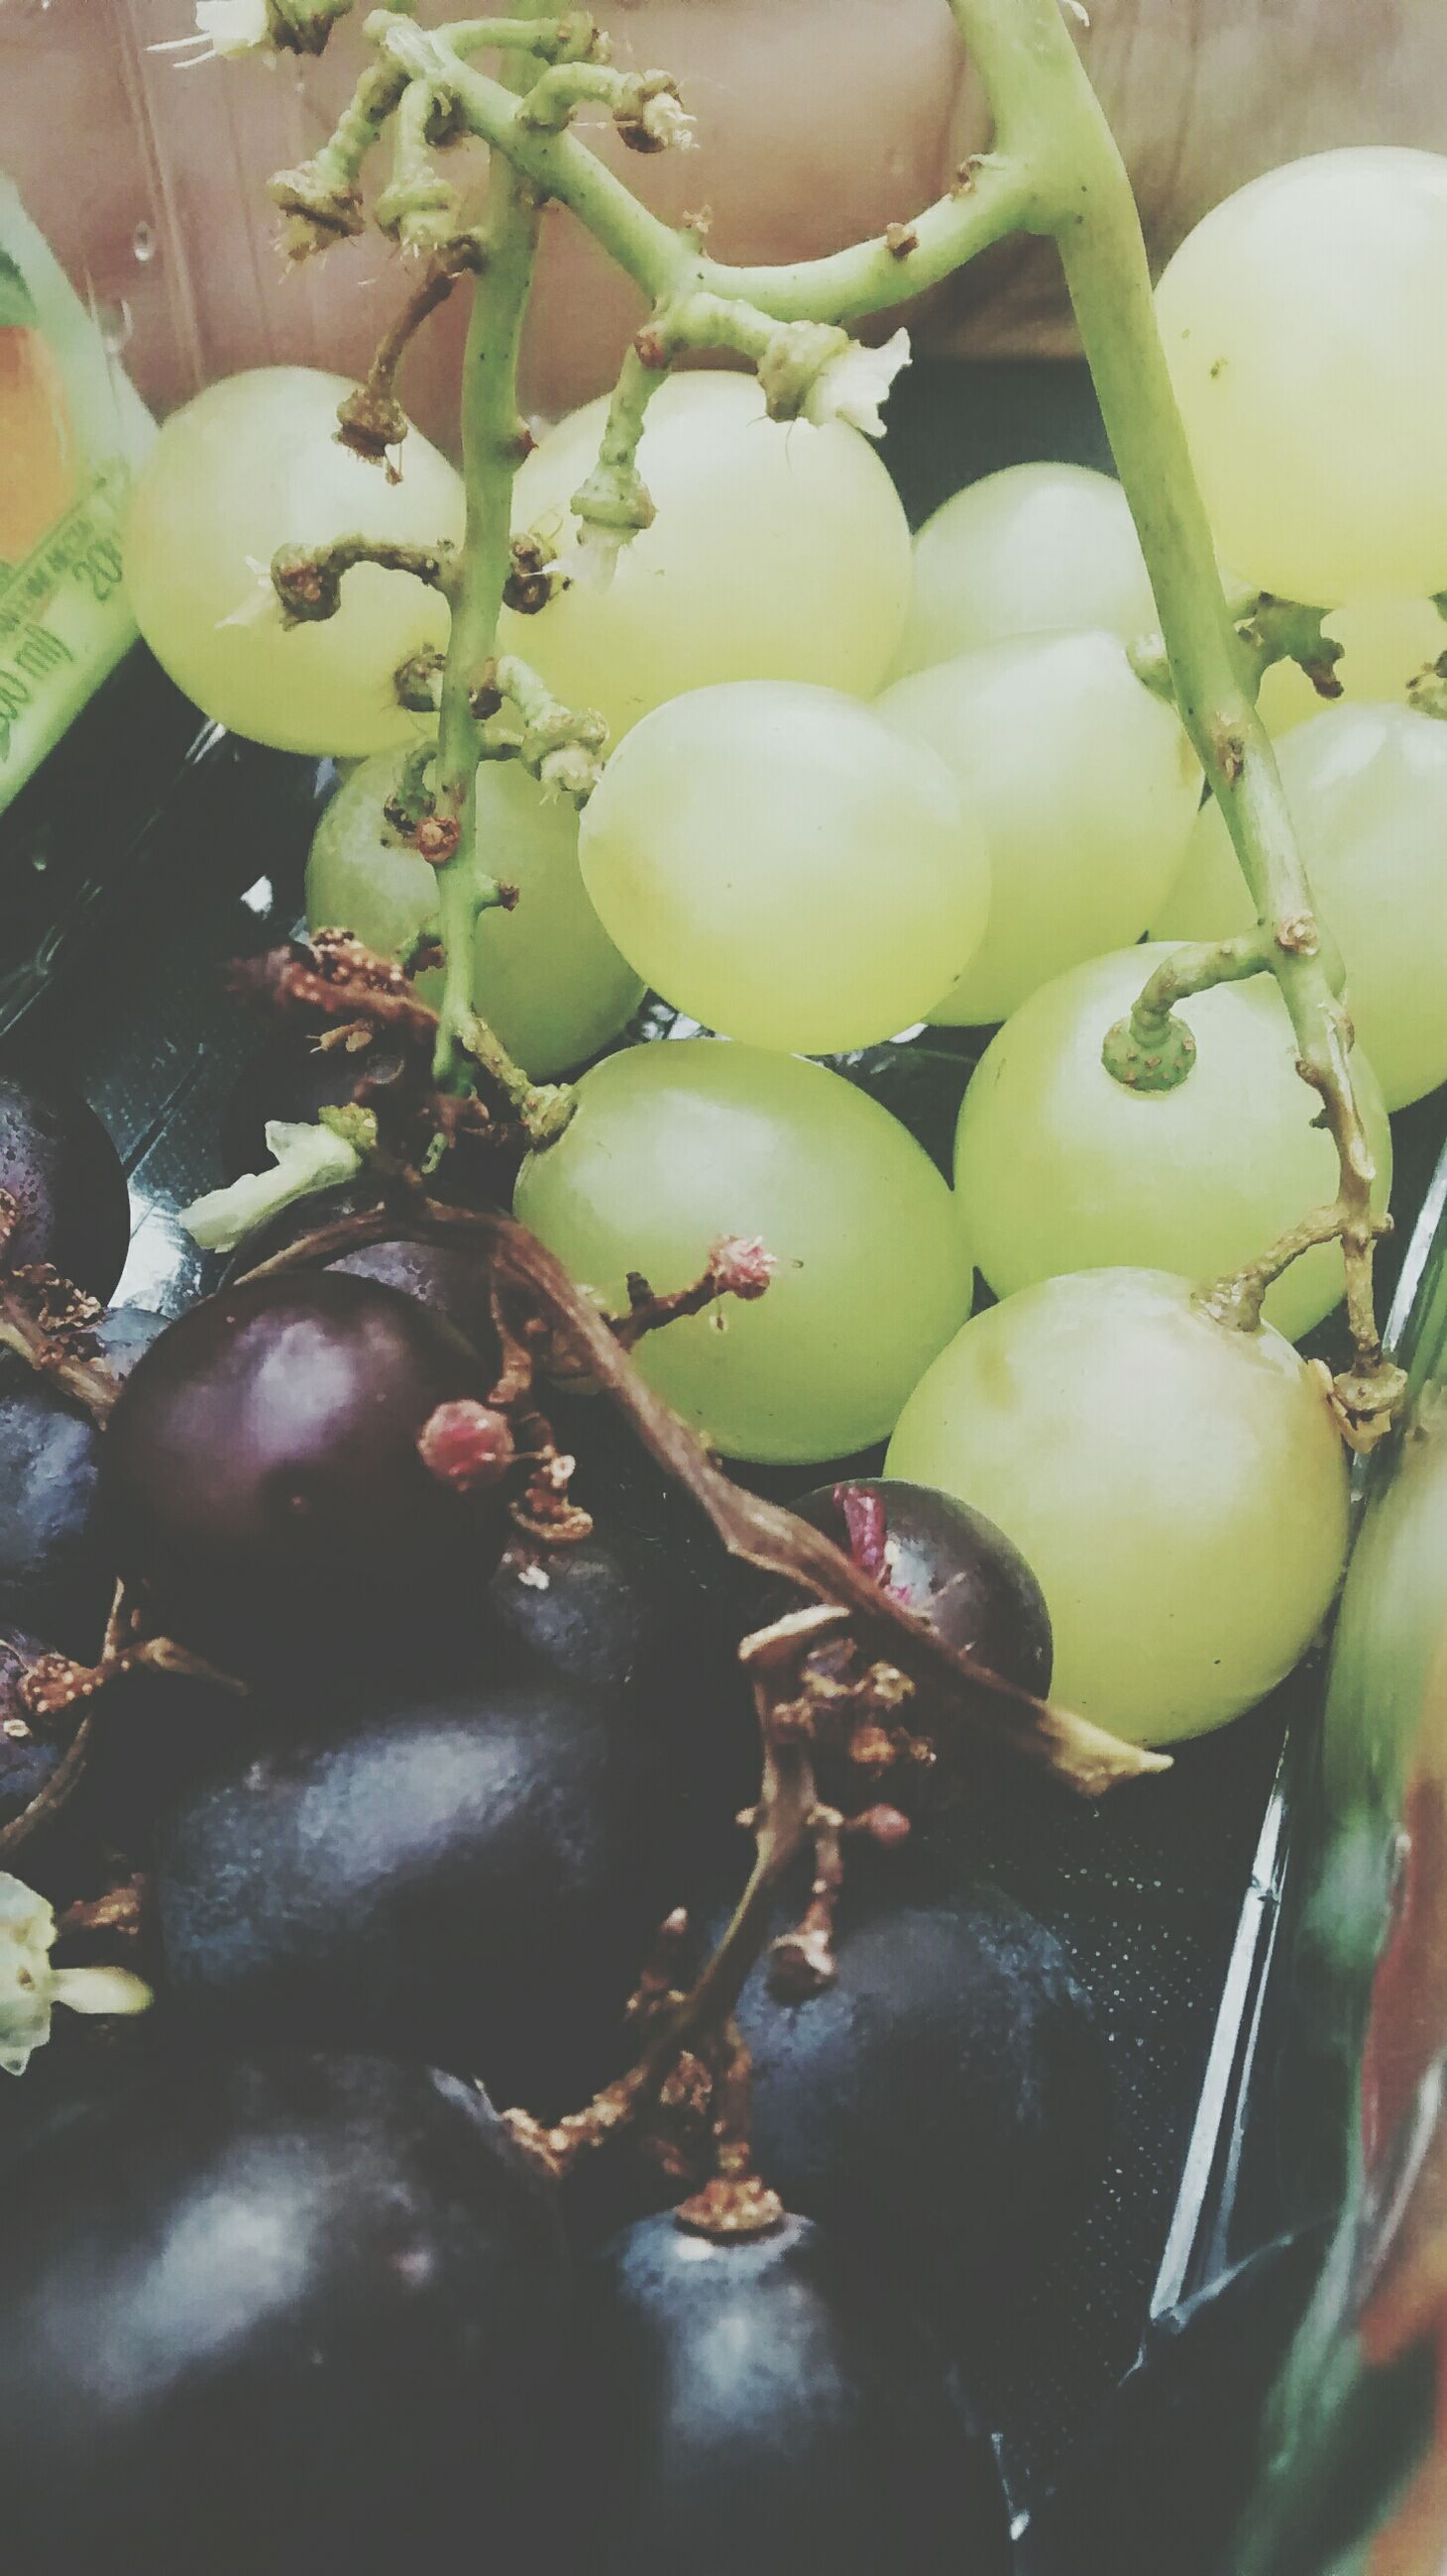 food and drink, fruit, healthy eating, food, freshness, close-up, leaf, green color, growth, raw food, ripe, high angle view, grape, indoors, organic, vegetable, nature, no people, branch, plant